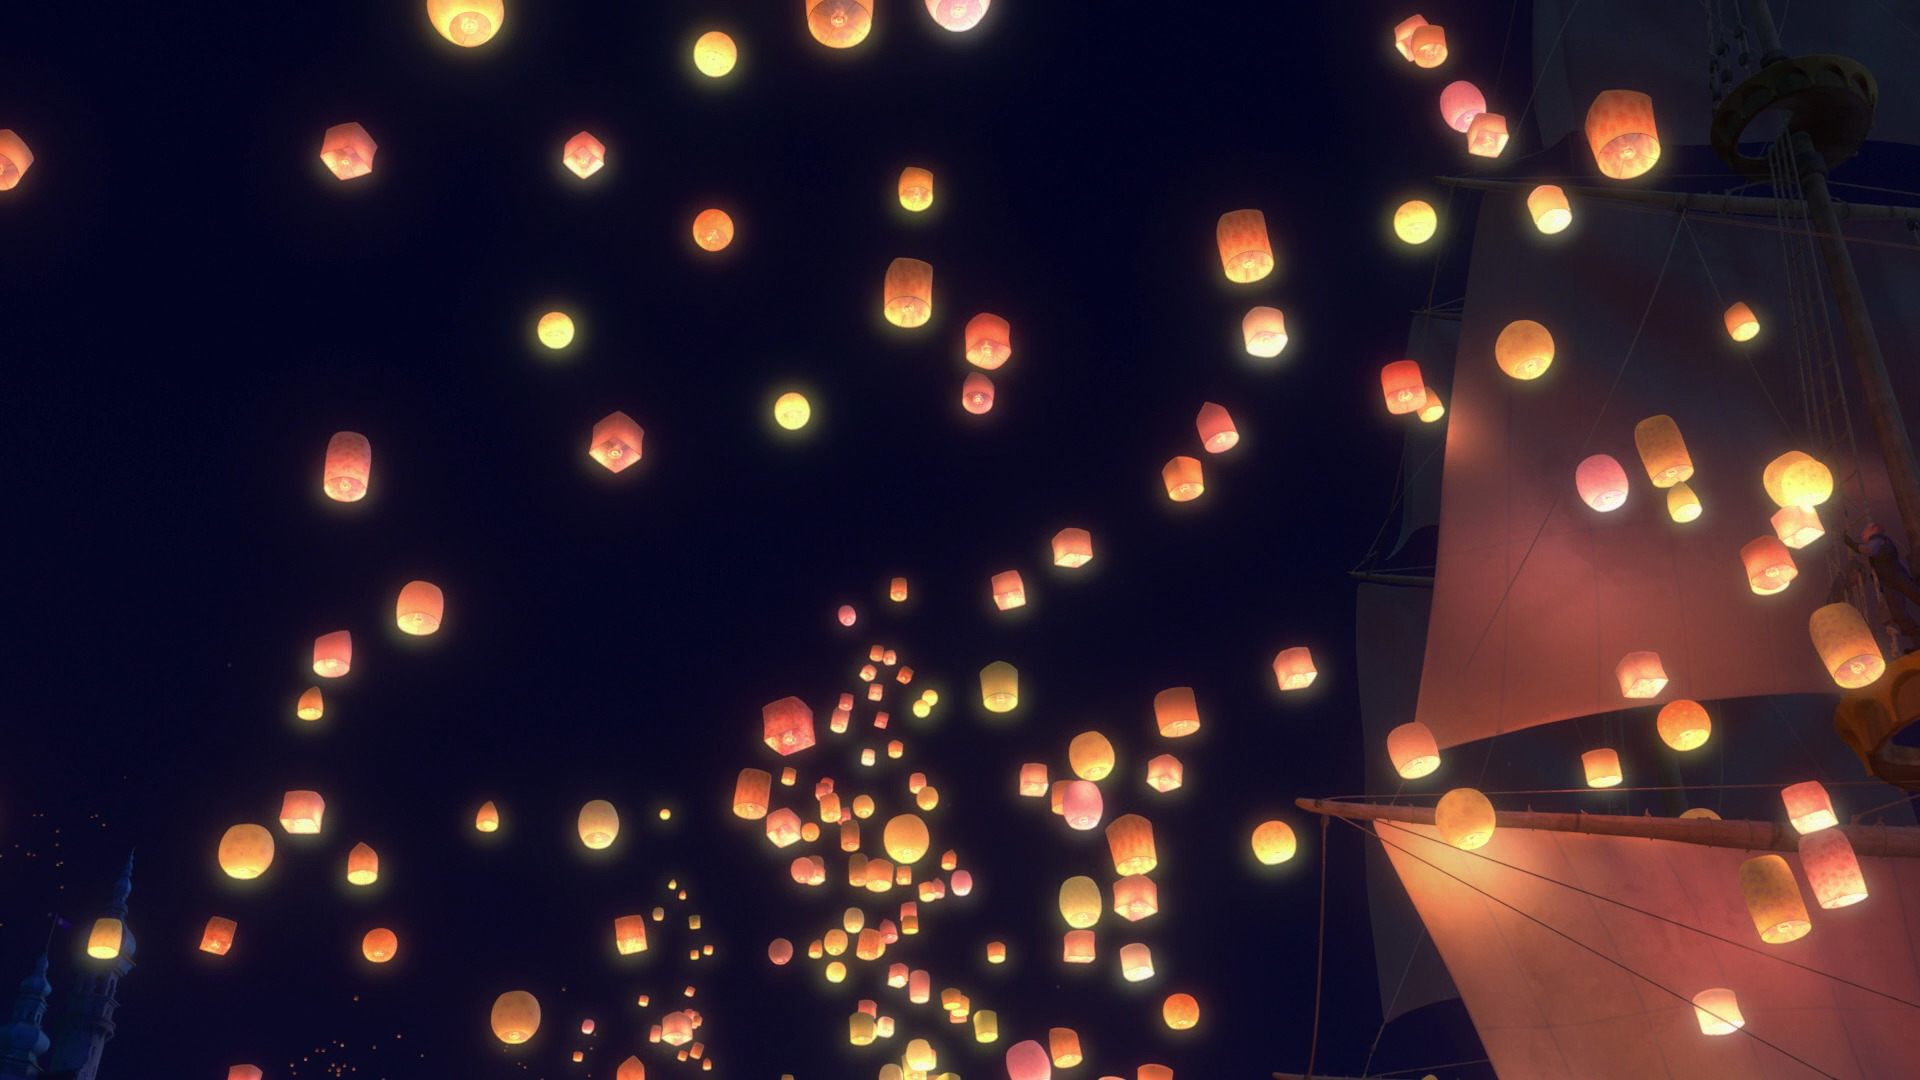 Image - Sky of lanterns.png | Disney Wiki | FANDOM powered by Wikia for Lantern Festival Tangled  557yll